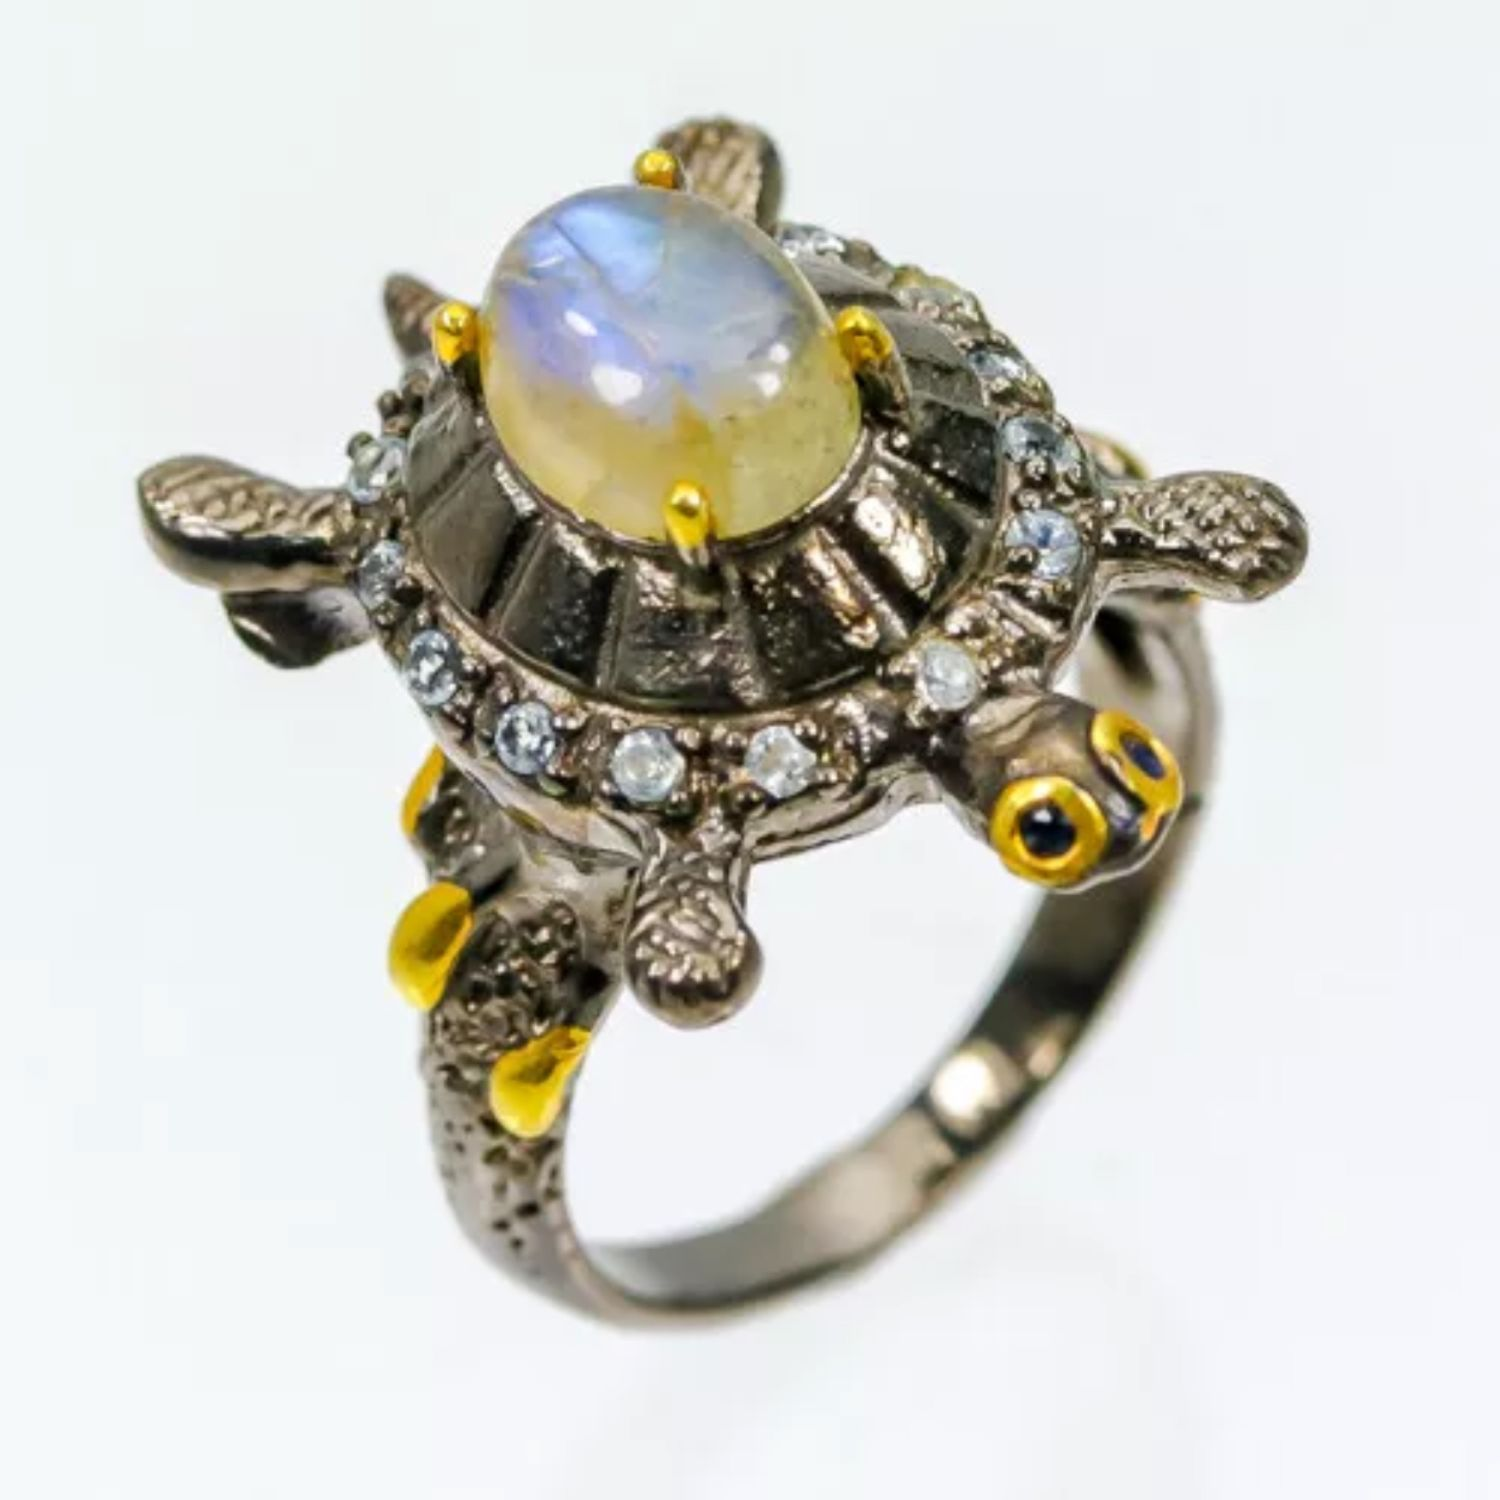 Author's ring Turtle with labradorite, Rings, Moscow,  Фото №1